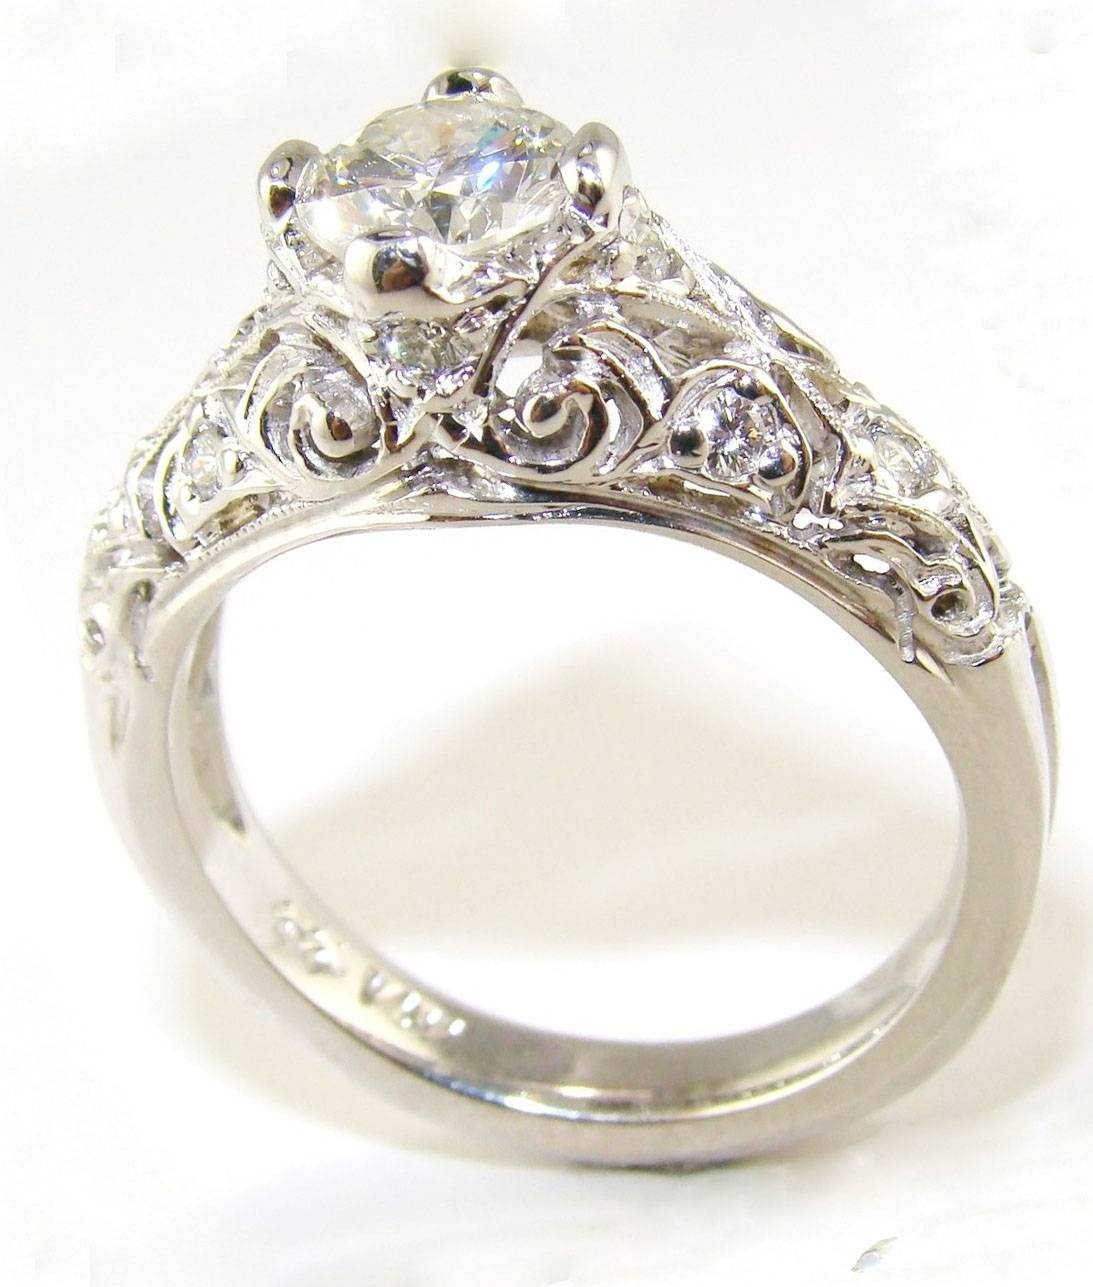 Vintage Diamond Engagement Rings For Women Throughout Womans Engagement Rings (View 14 of 15)